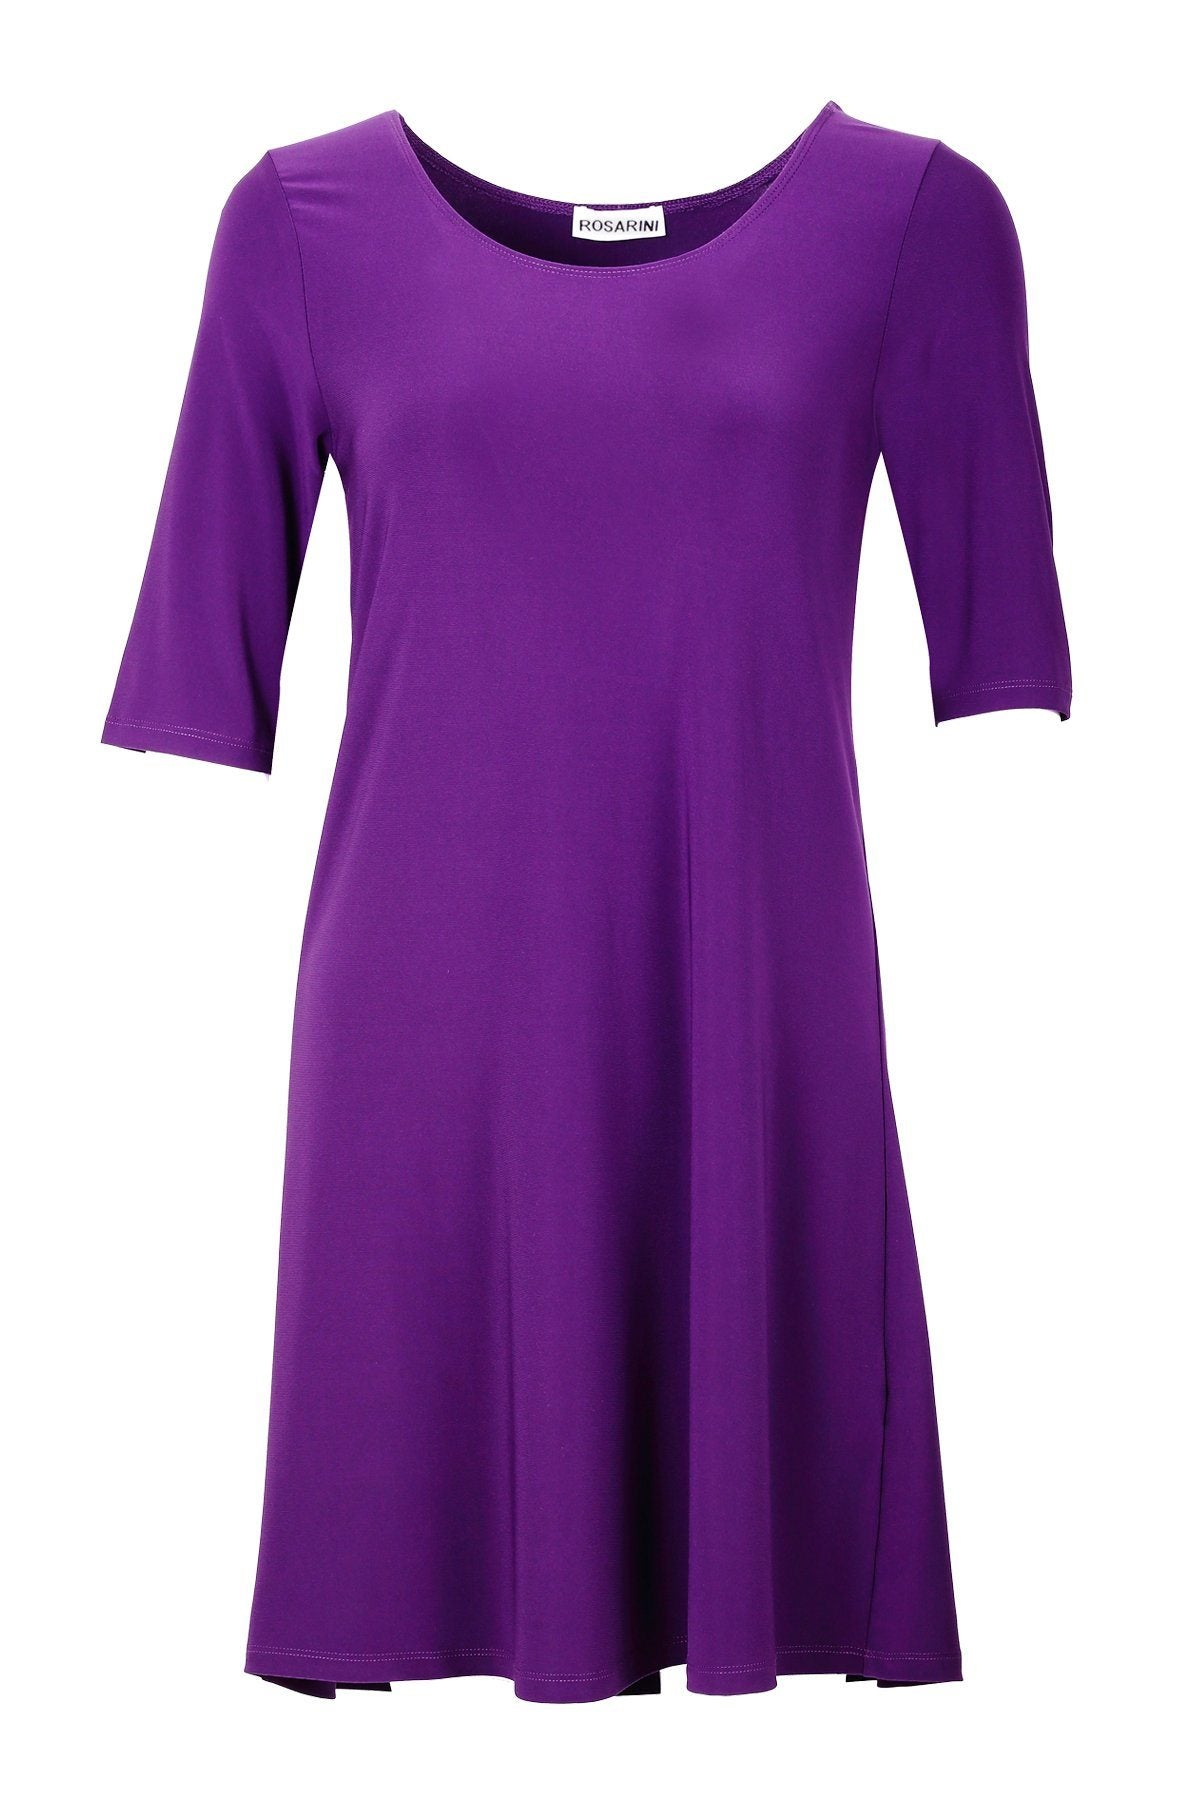 Women's Purple A Line Dress Top Rosarini